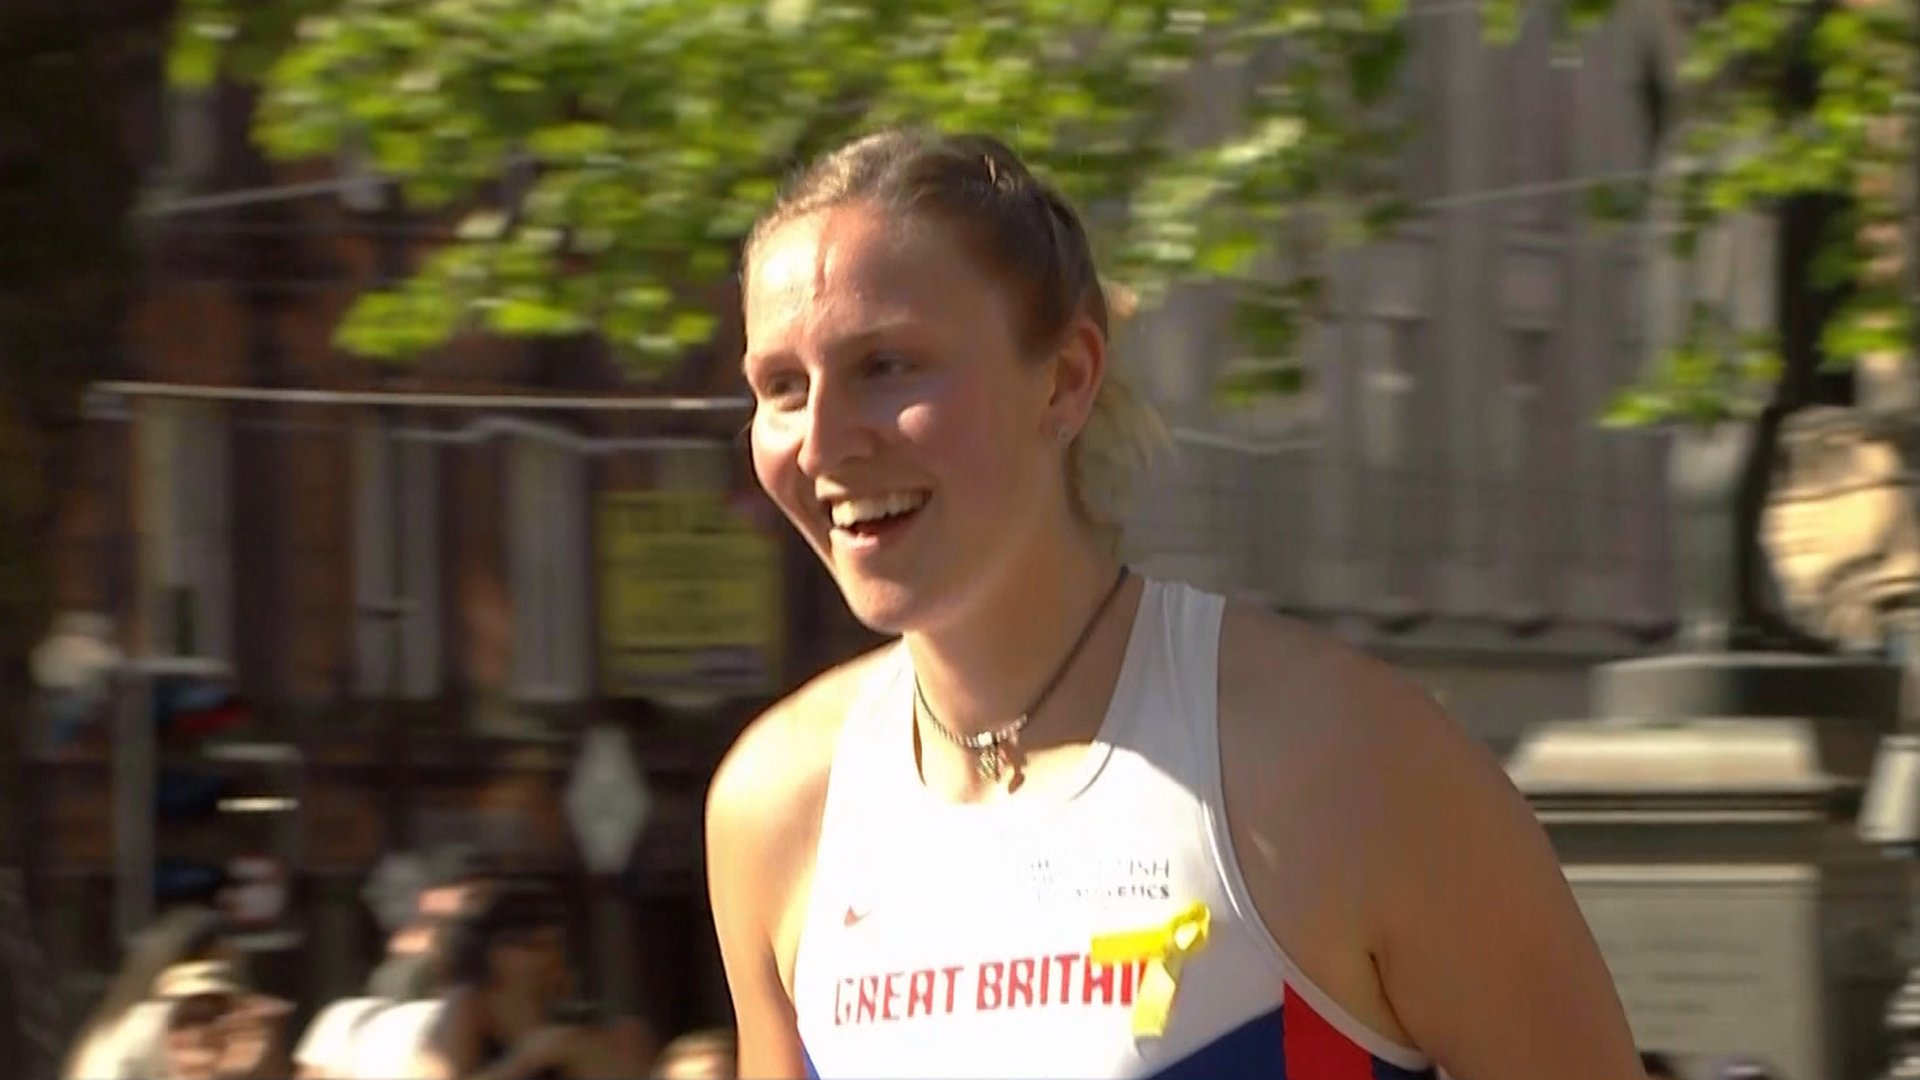 Manchester City Games: Holly Bradshaw wins pole vault with GB record